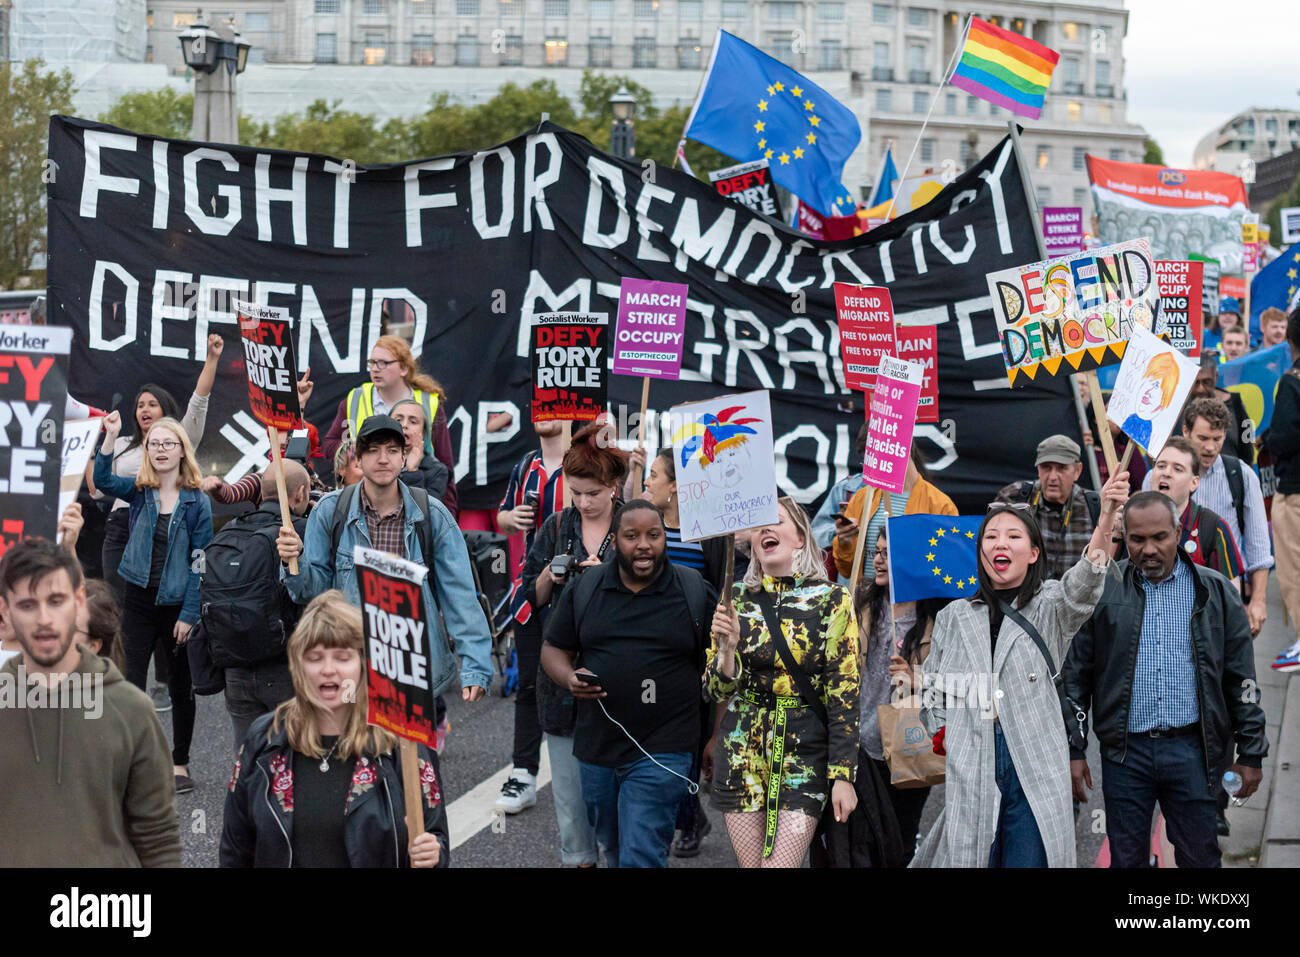 Protesters take to the streets as Parliament resumed after summer recess with new Prime Minister Boris Johnson debating No Deal Brexit and prorogue - Stock Photo